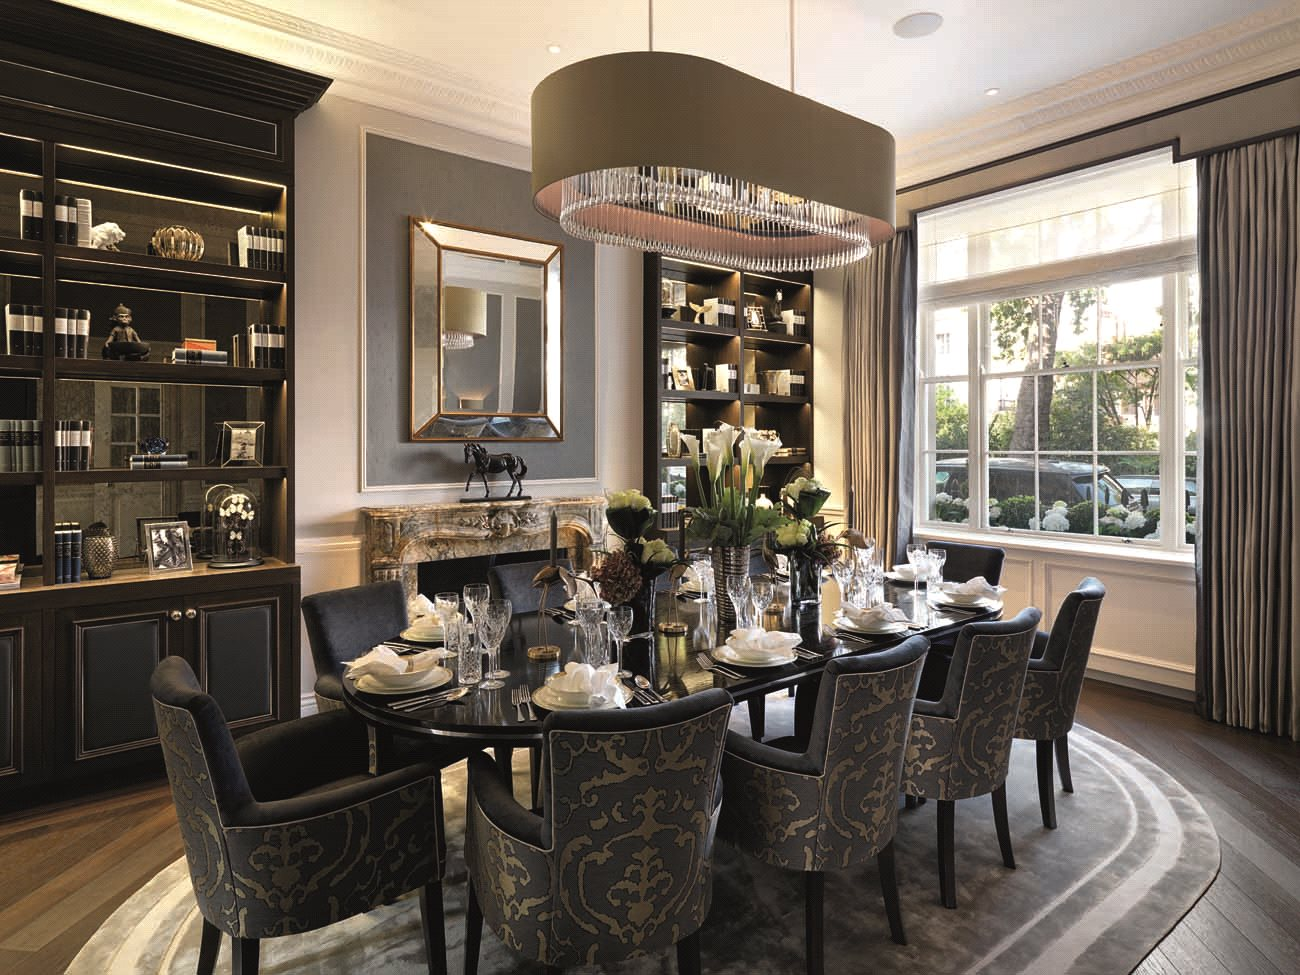 Chester square belgravia london sw1w a luxury home for for Luxury real estate london